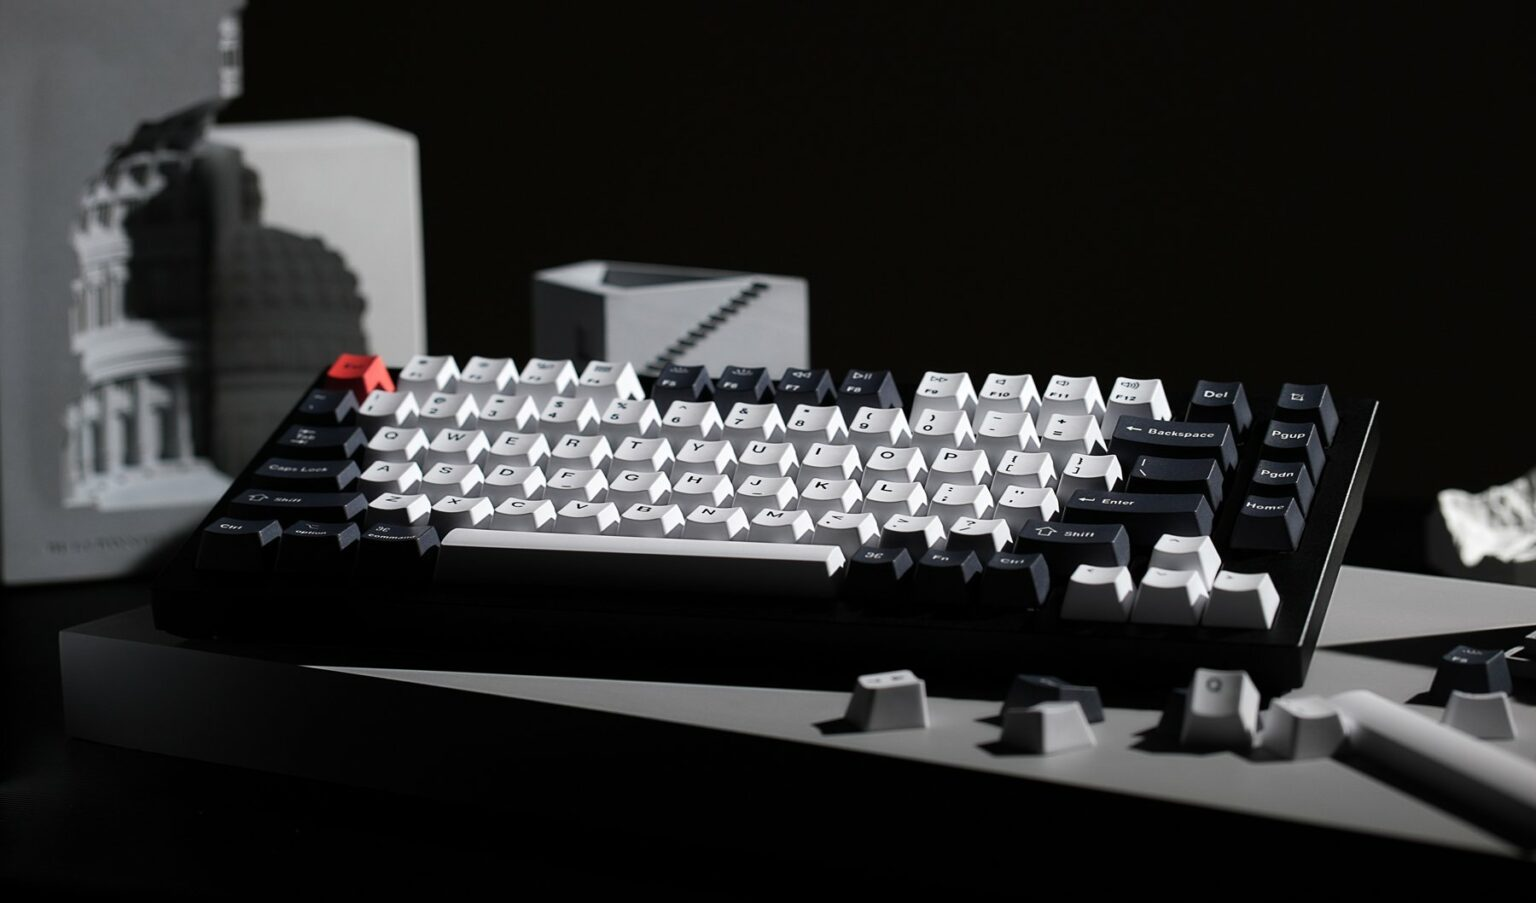 Even a beginner can customize the new Keychron Q1 mechanical keyboard.